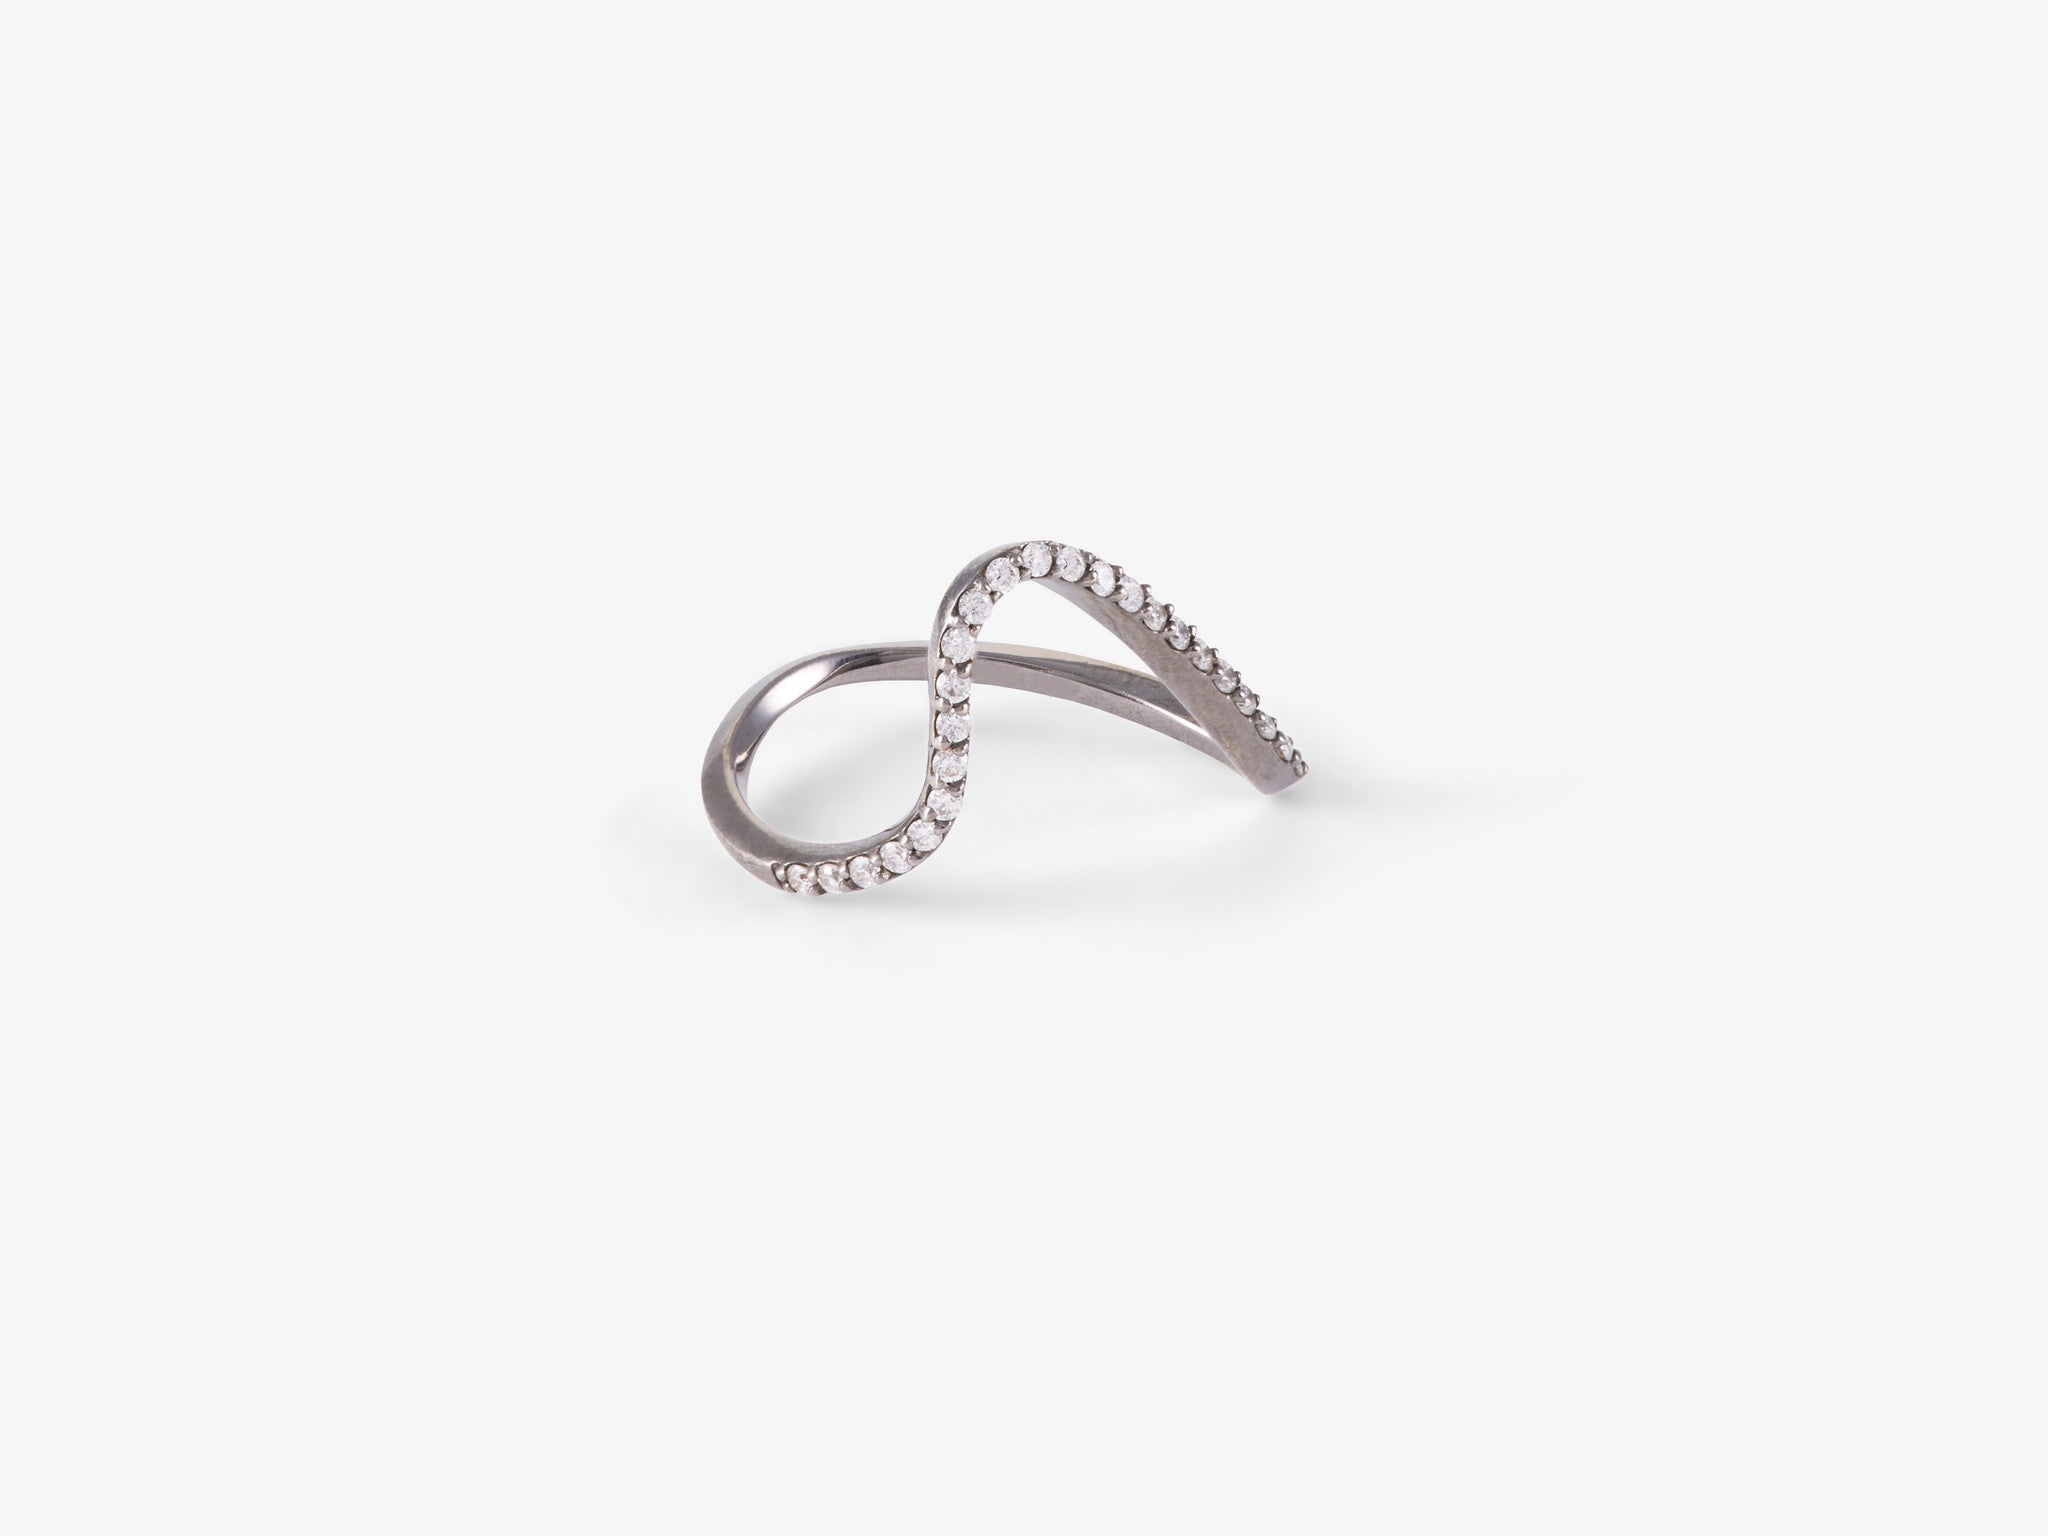 Single Curved Band Ring with Diamond Pavé